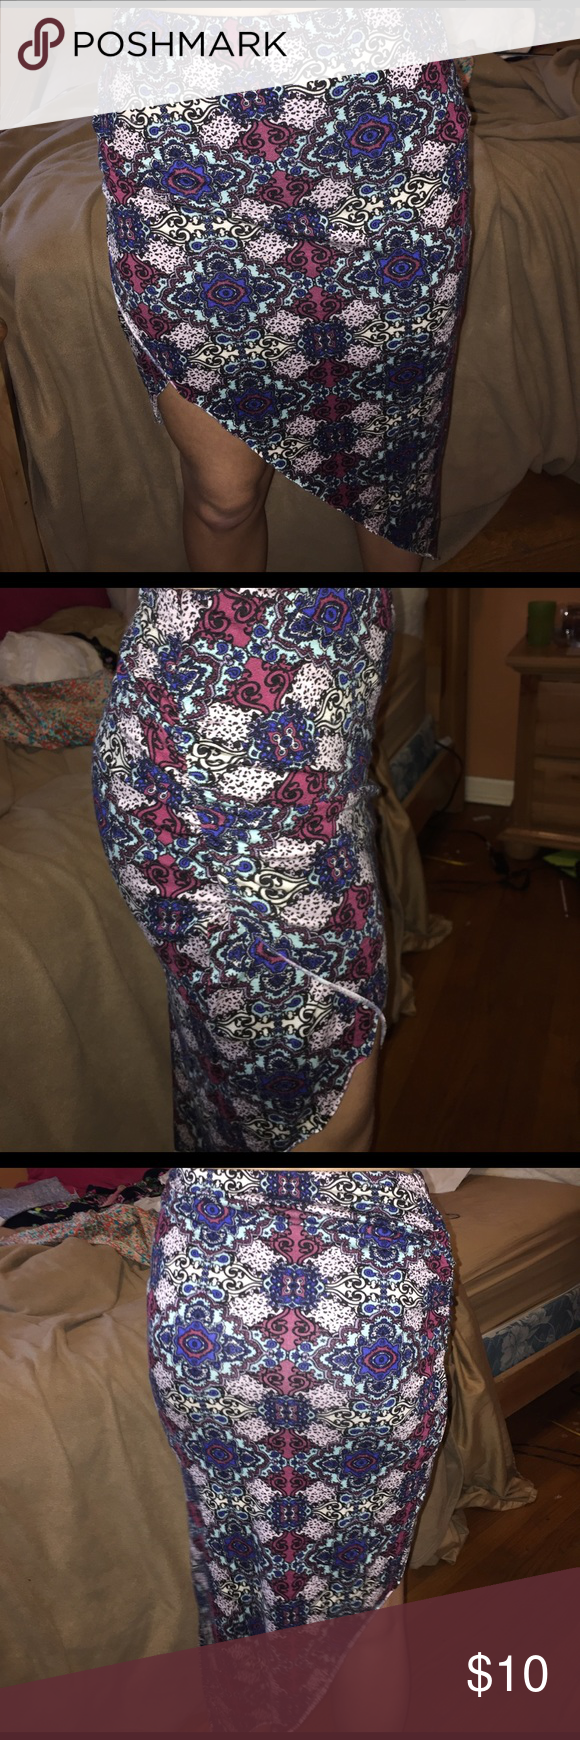 Midi/maxi Skirt Multi colored skirt good for summer nights! Barely worn. Super soft and stretchy. Charlotte Russe size: small Charlotte Russe Skirts High Low